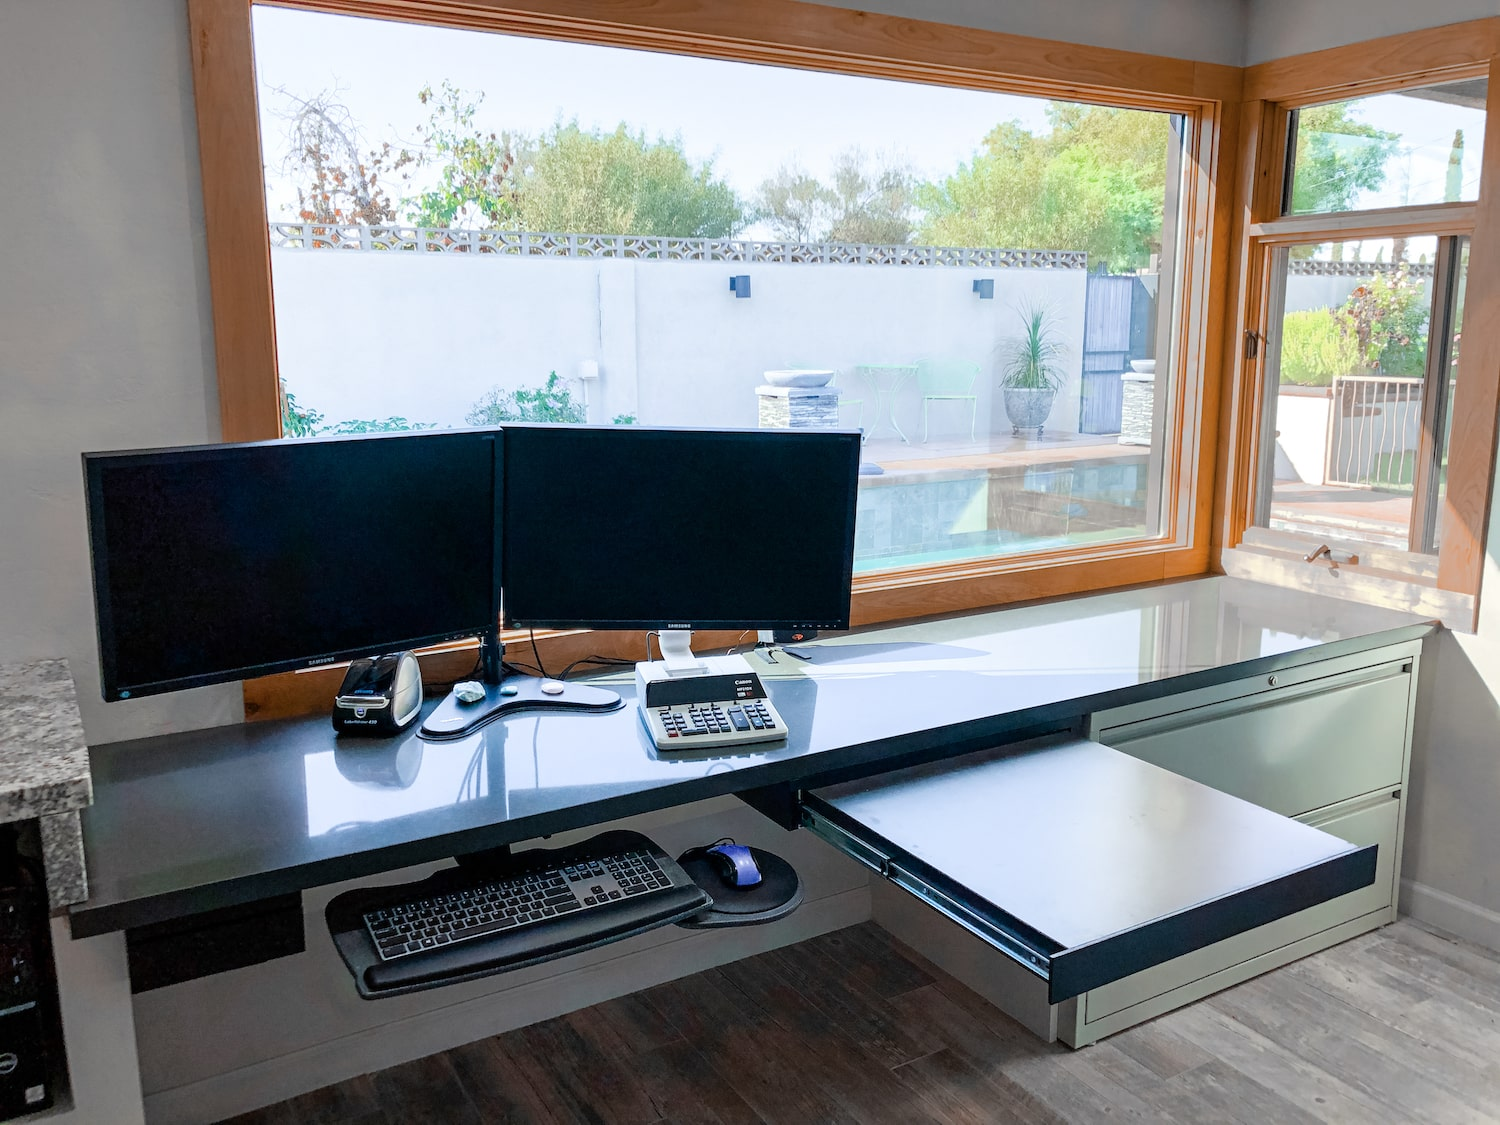 A remodeled home office in Tucson with a large window letting in natural light